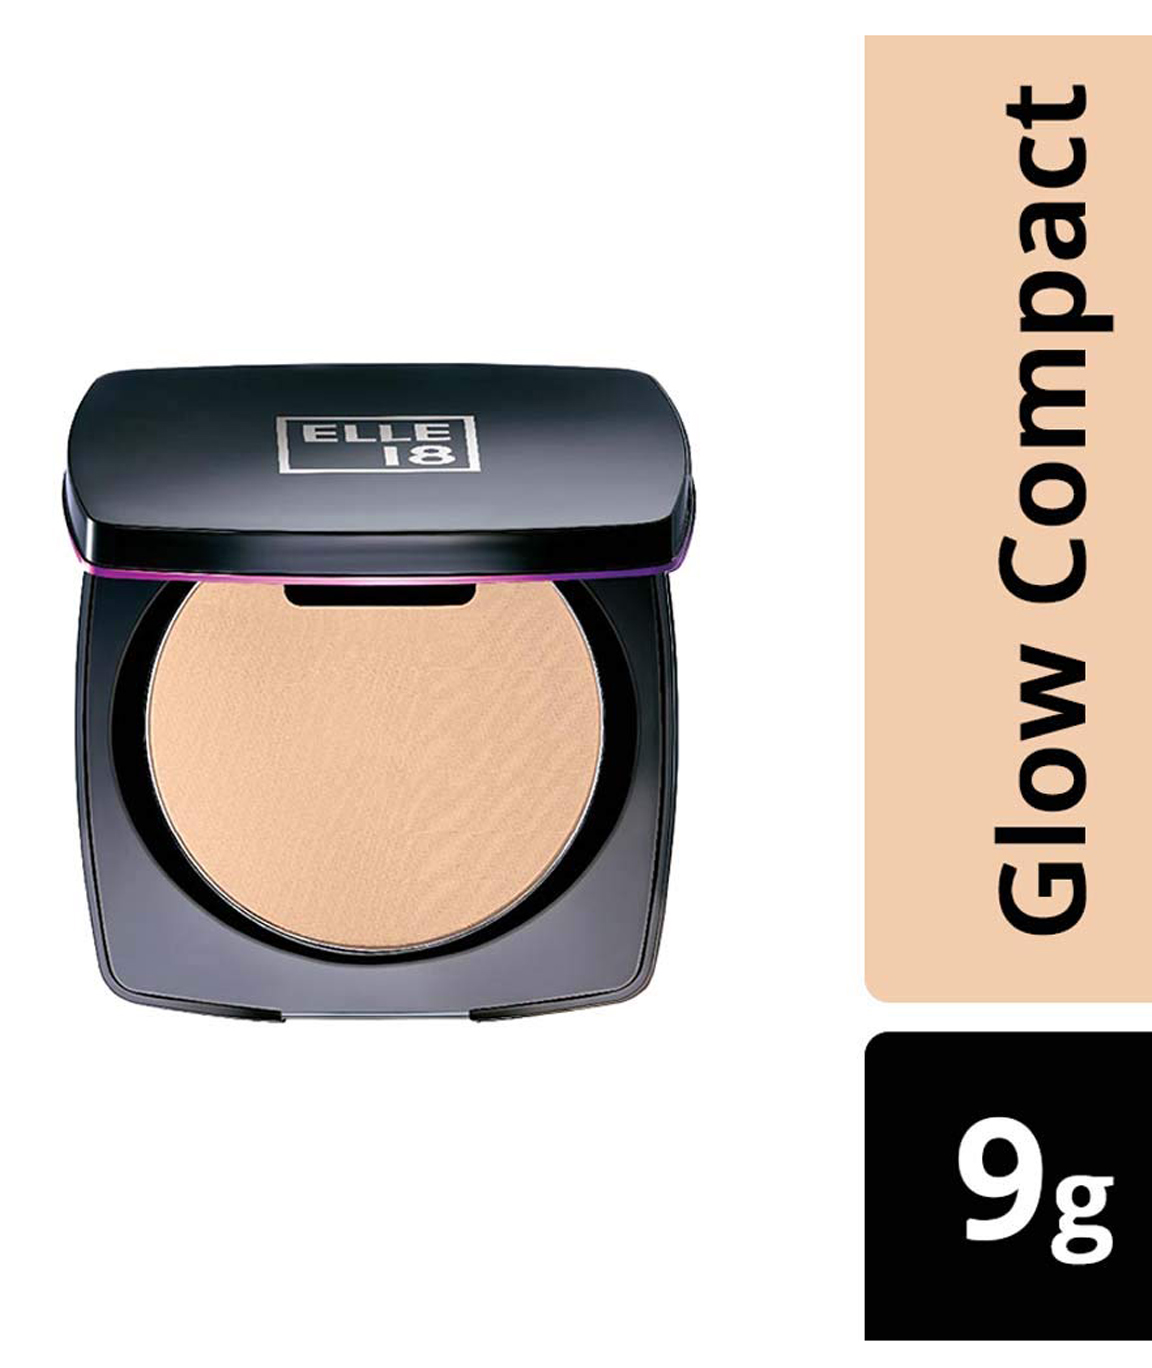 Elle 18 Lasting Glow Compact Coral 9 g